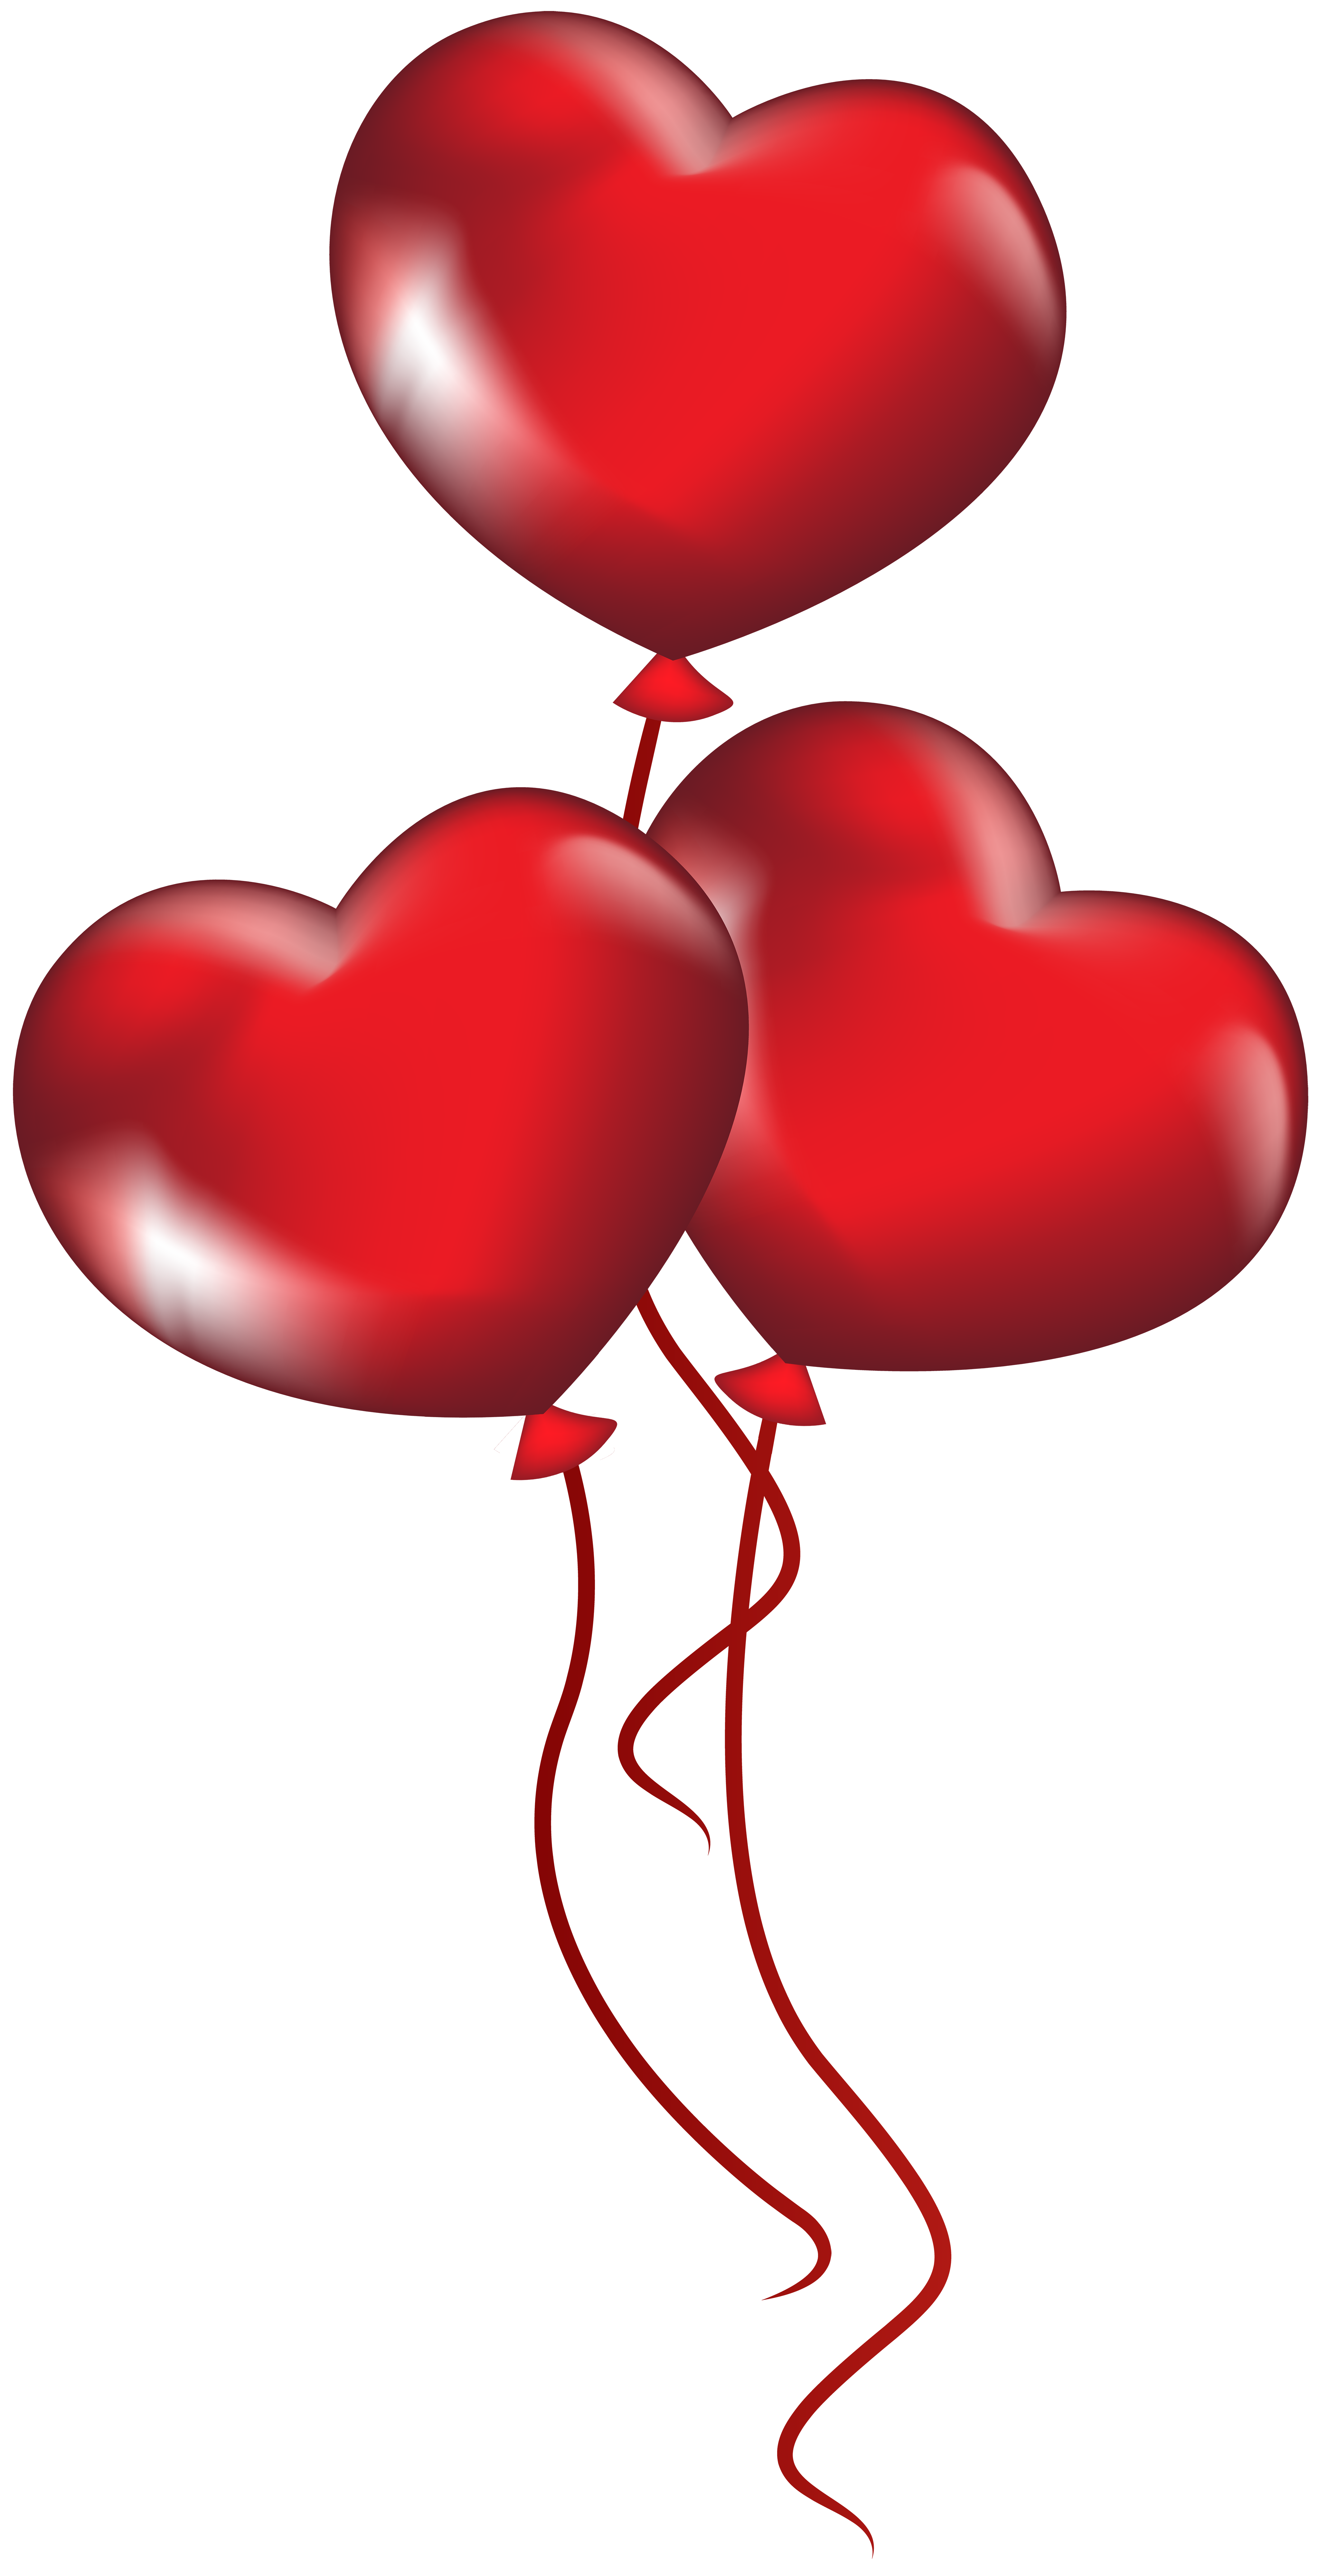 Heart balloons transparent png. Clipart balloon valentines